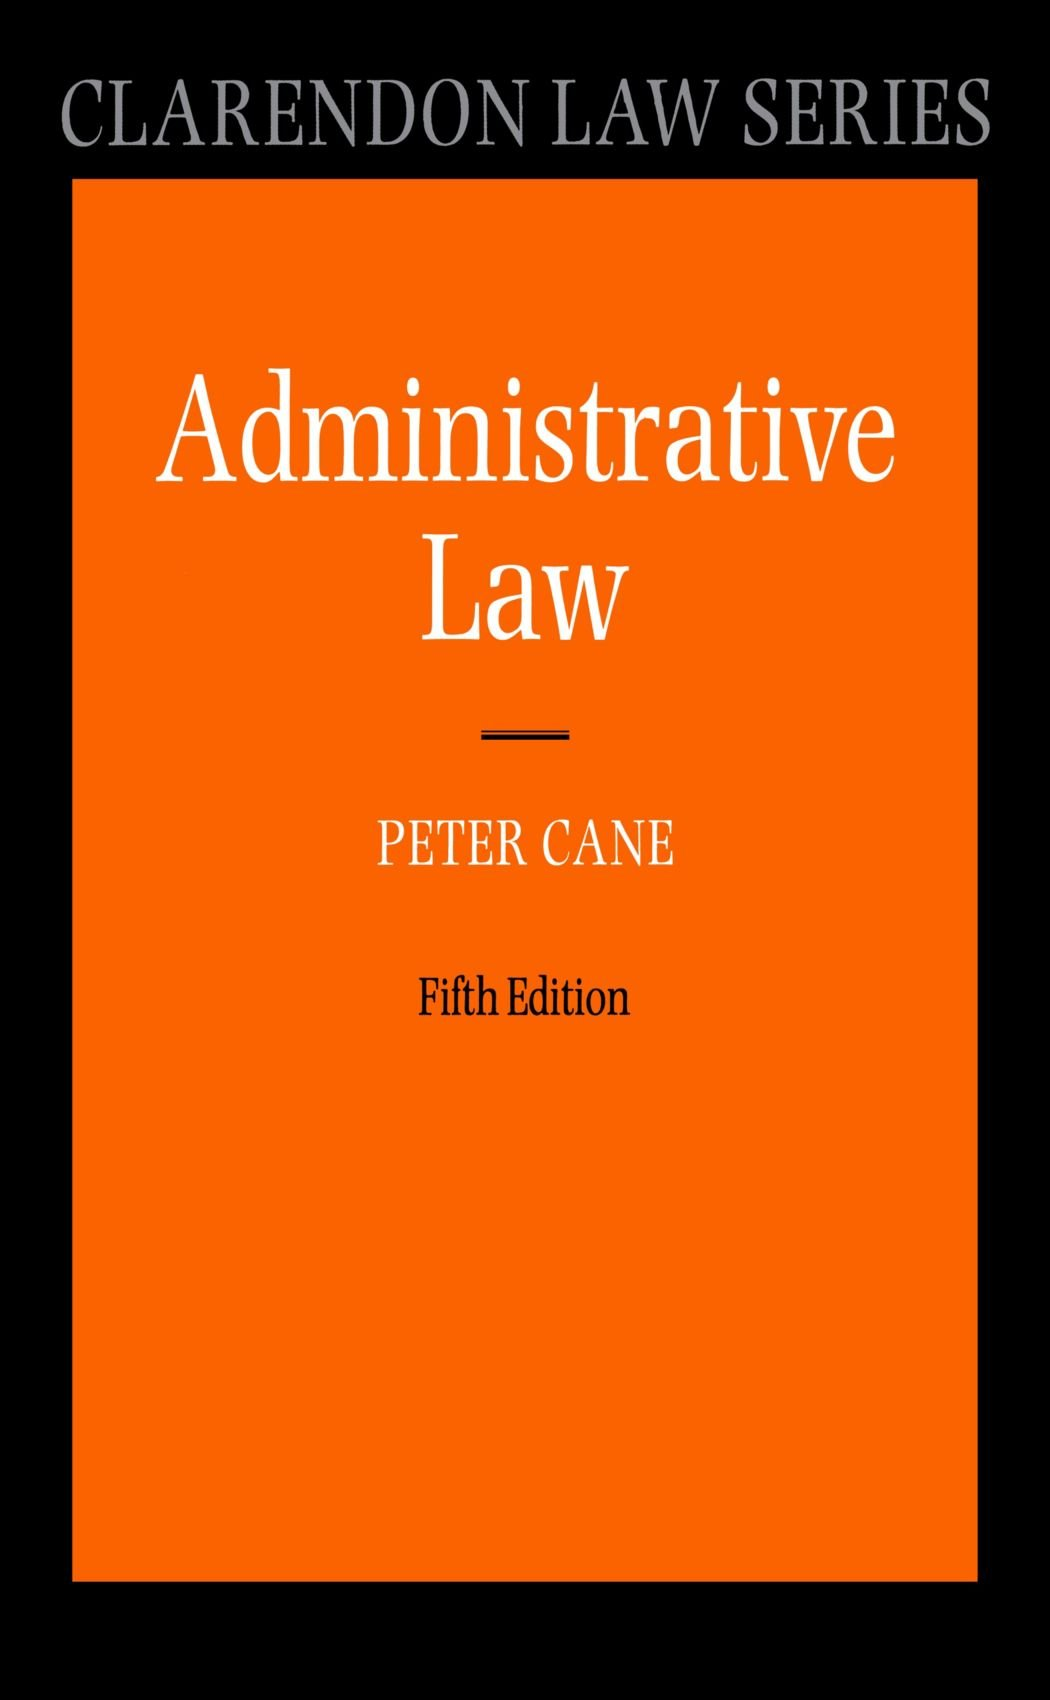 Administrative Law (Clarendon Law) (Clarendon Law Series): Amazon.co.uk:  Peter Cane: 9780199692330: Books